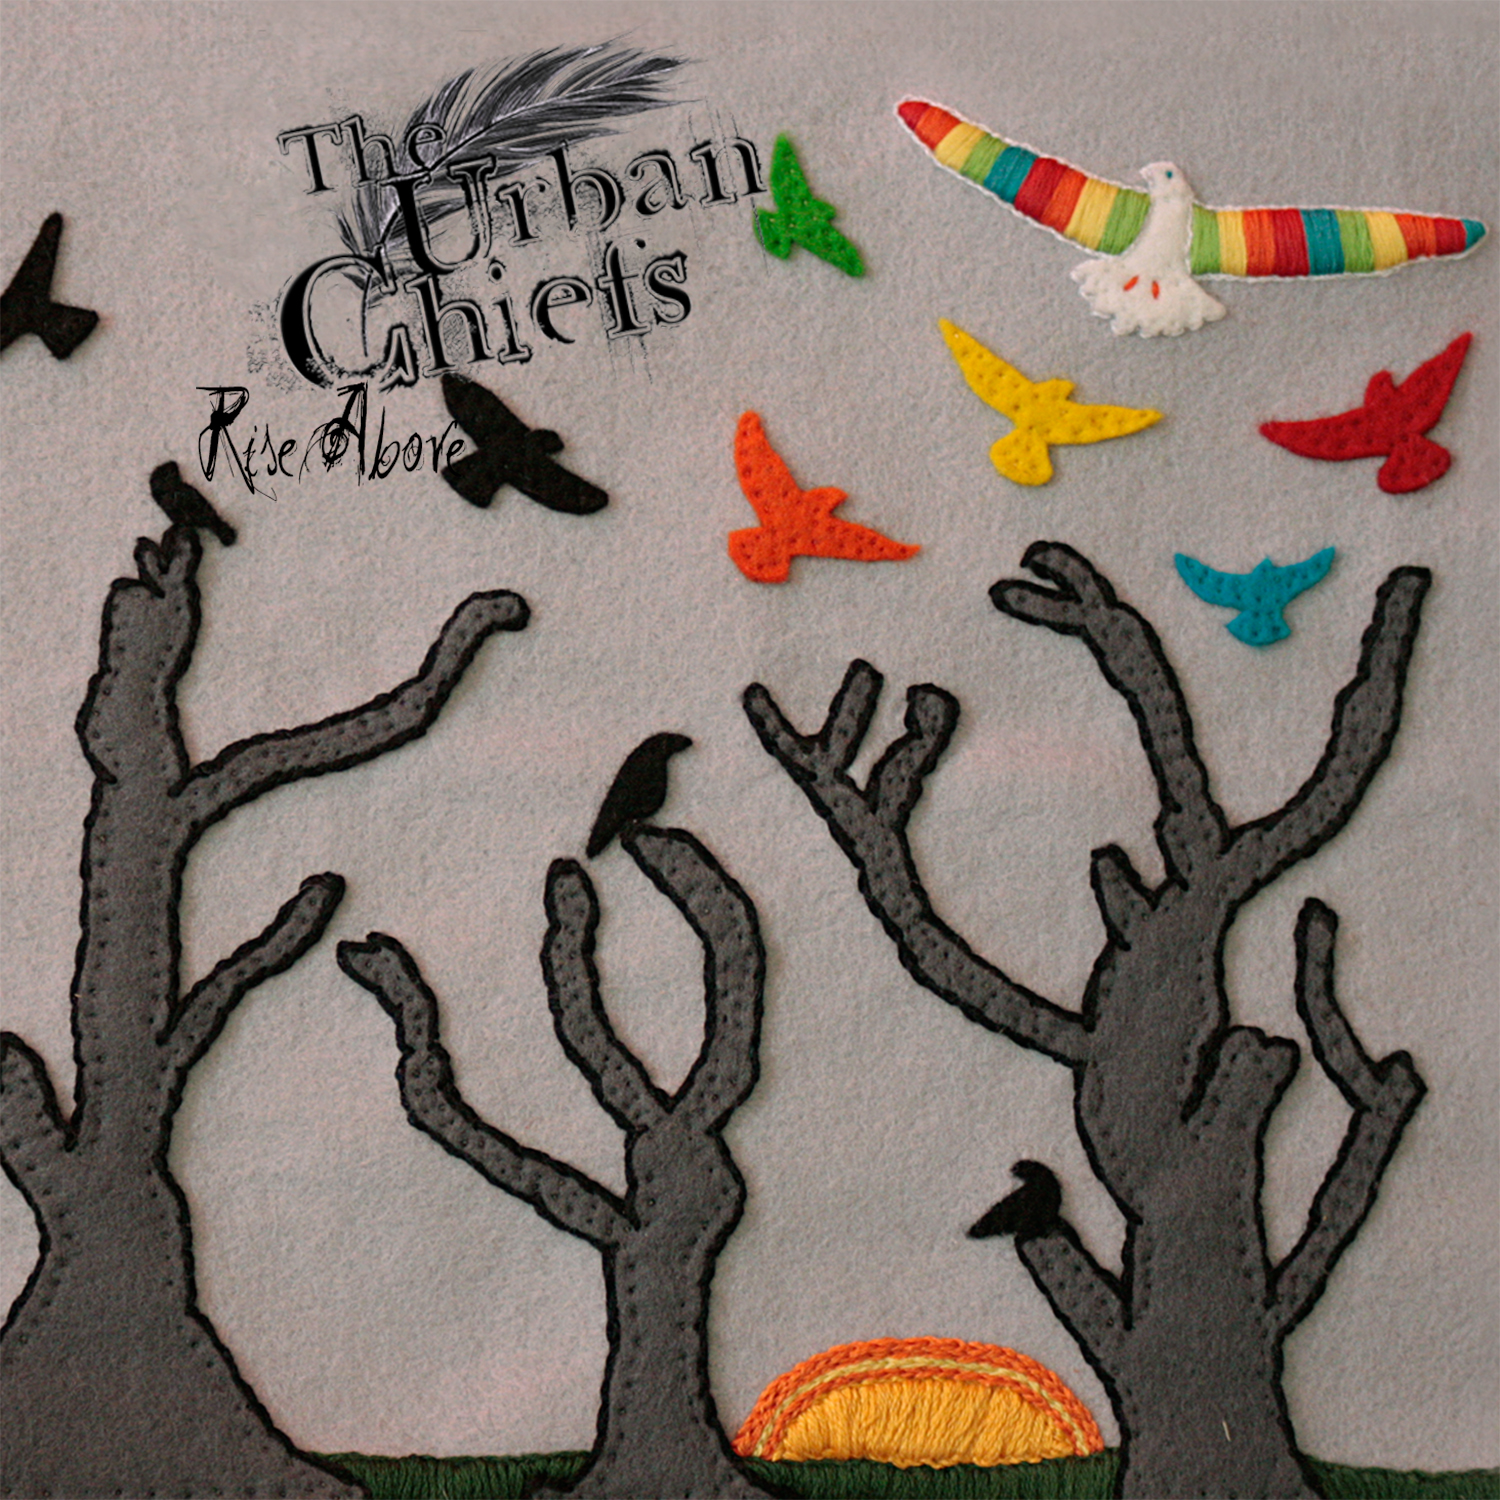 The Urban Chiefs – Rise Above